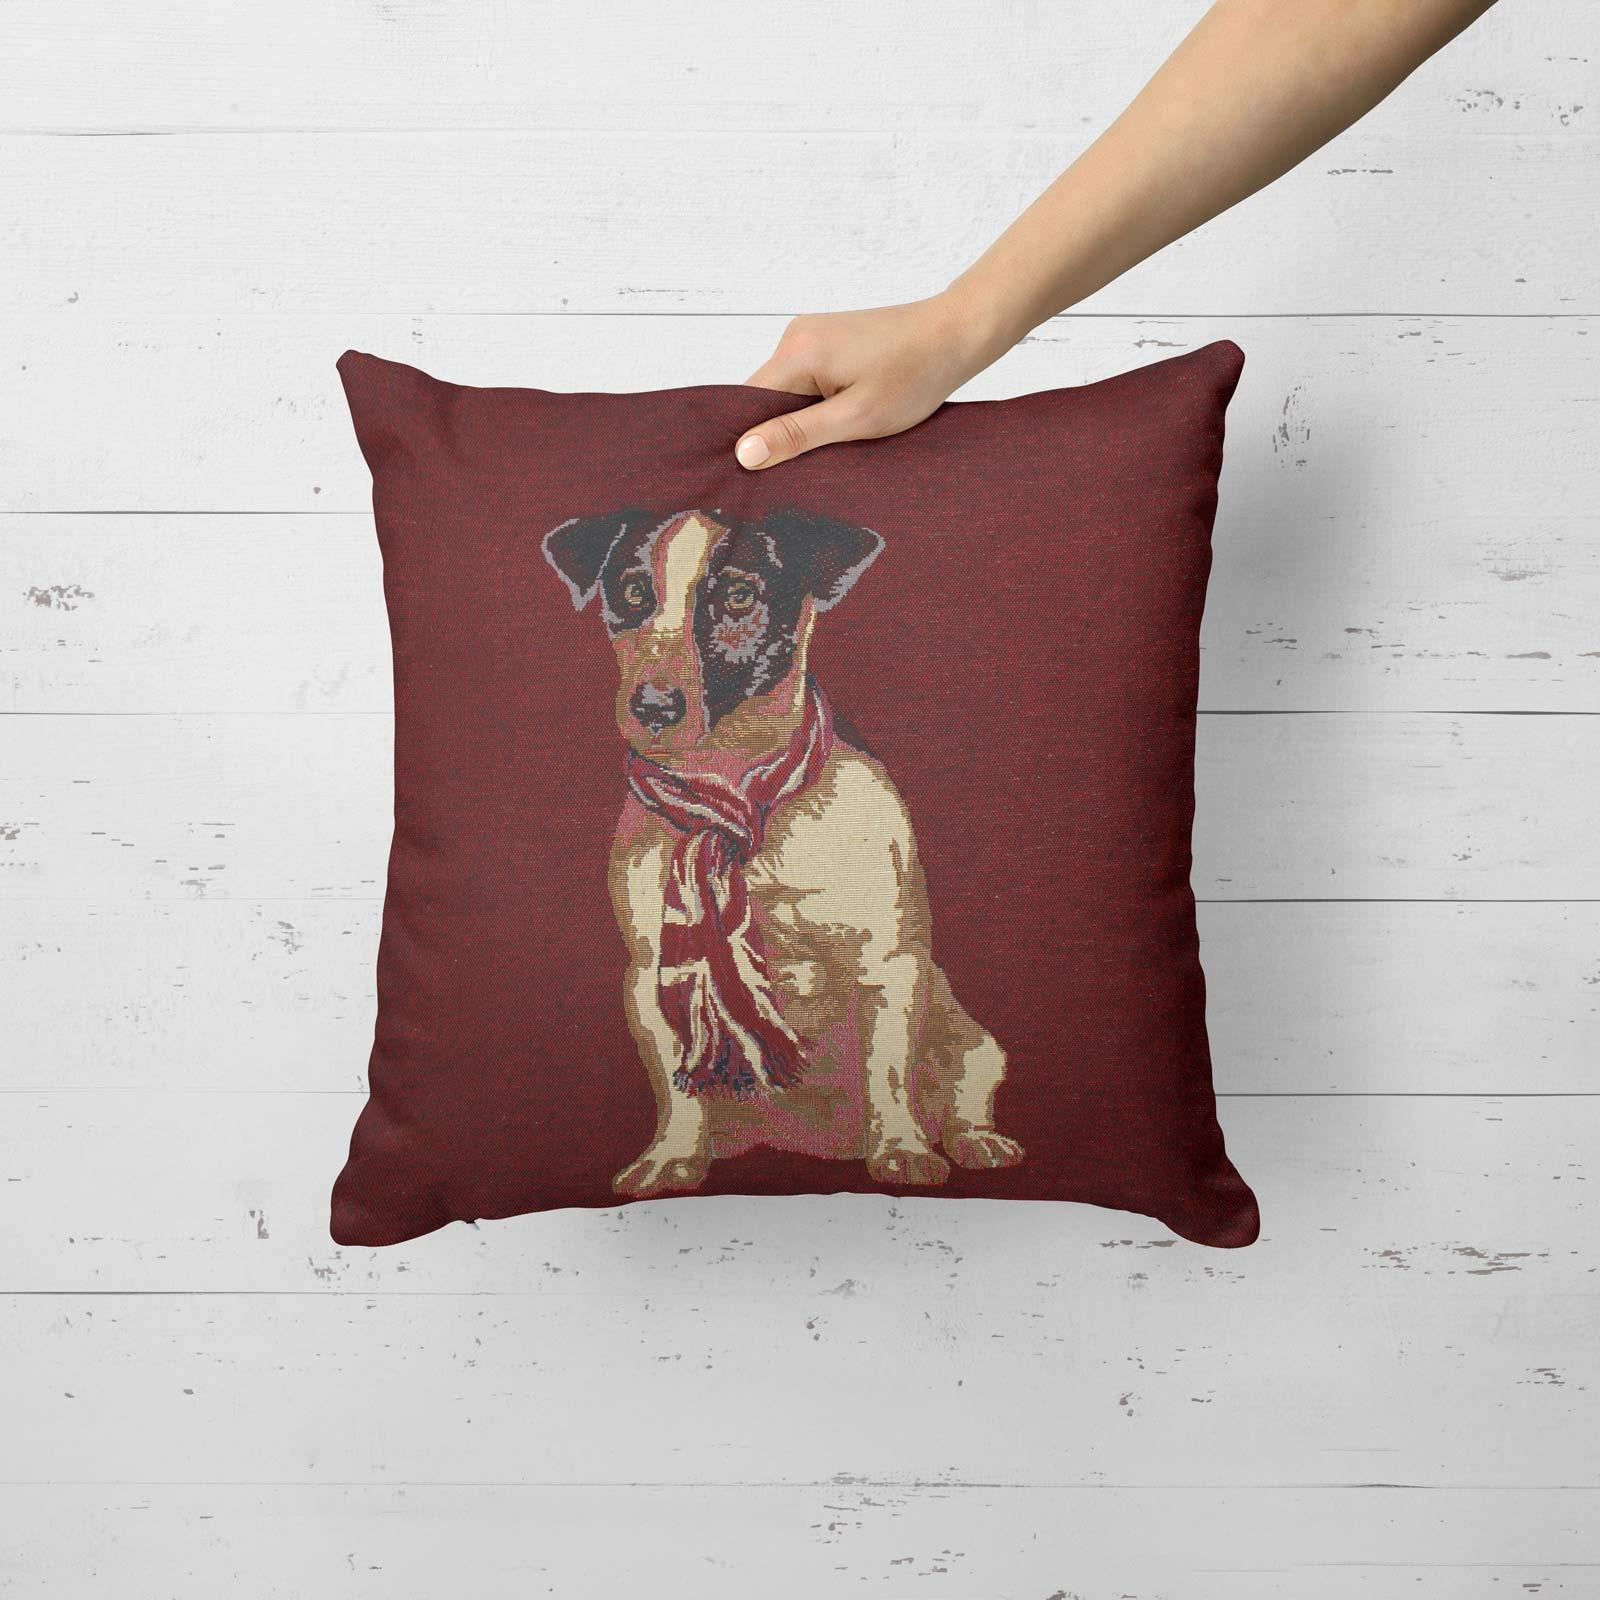 Tapestry-Cushion-Covers-Vintage-Pillow-Cover-Collection-18-034-45cm-Filled-Cushions thumbnail 90